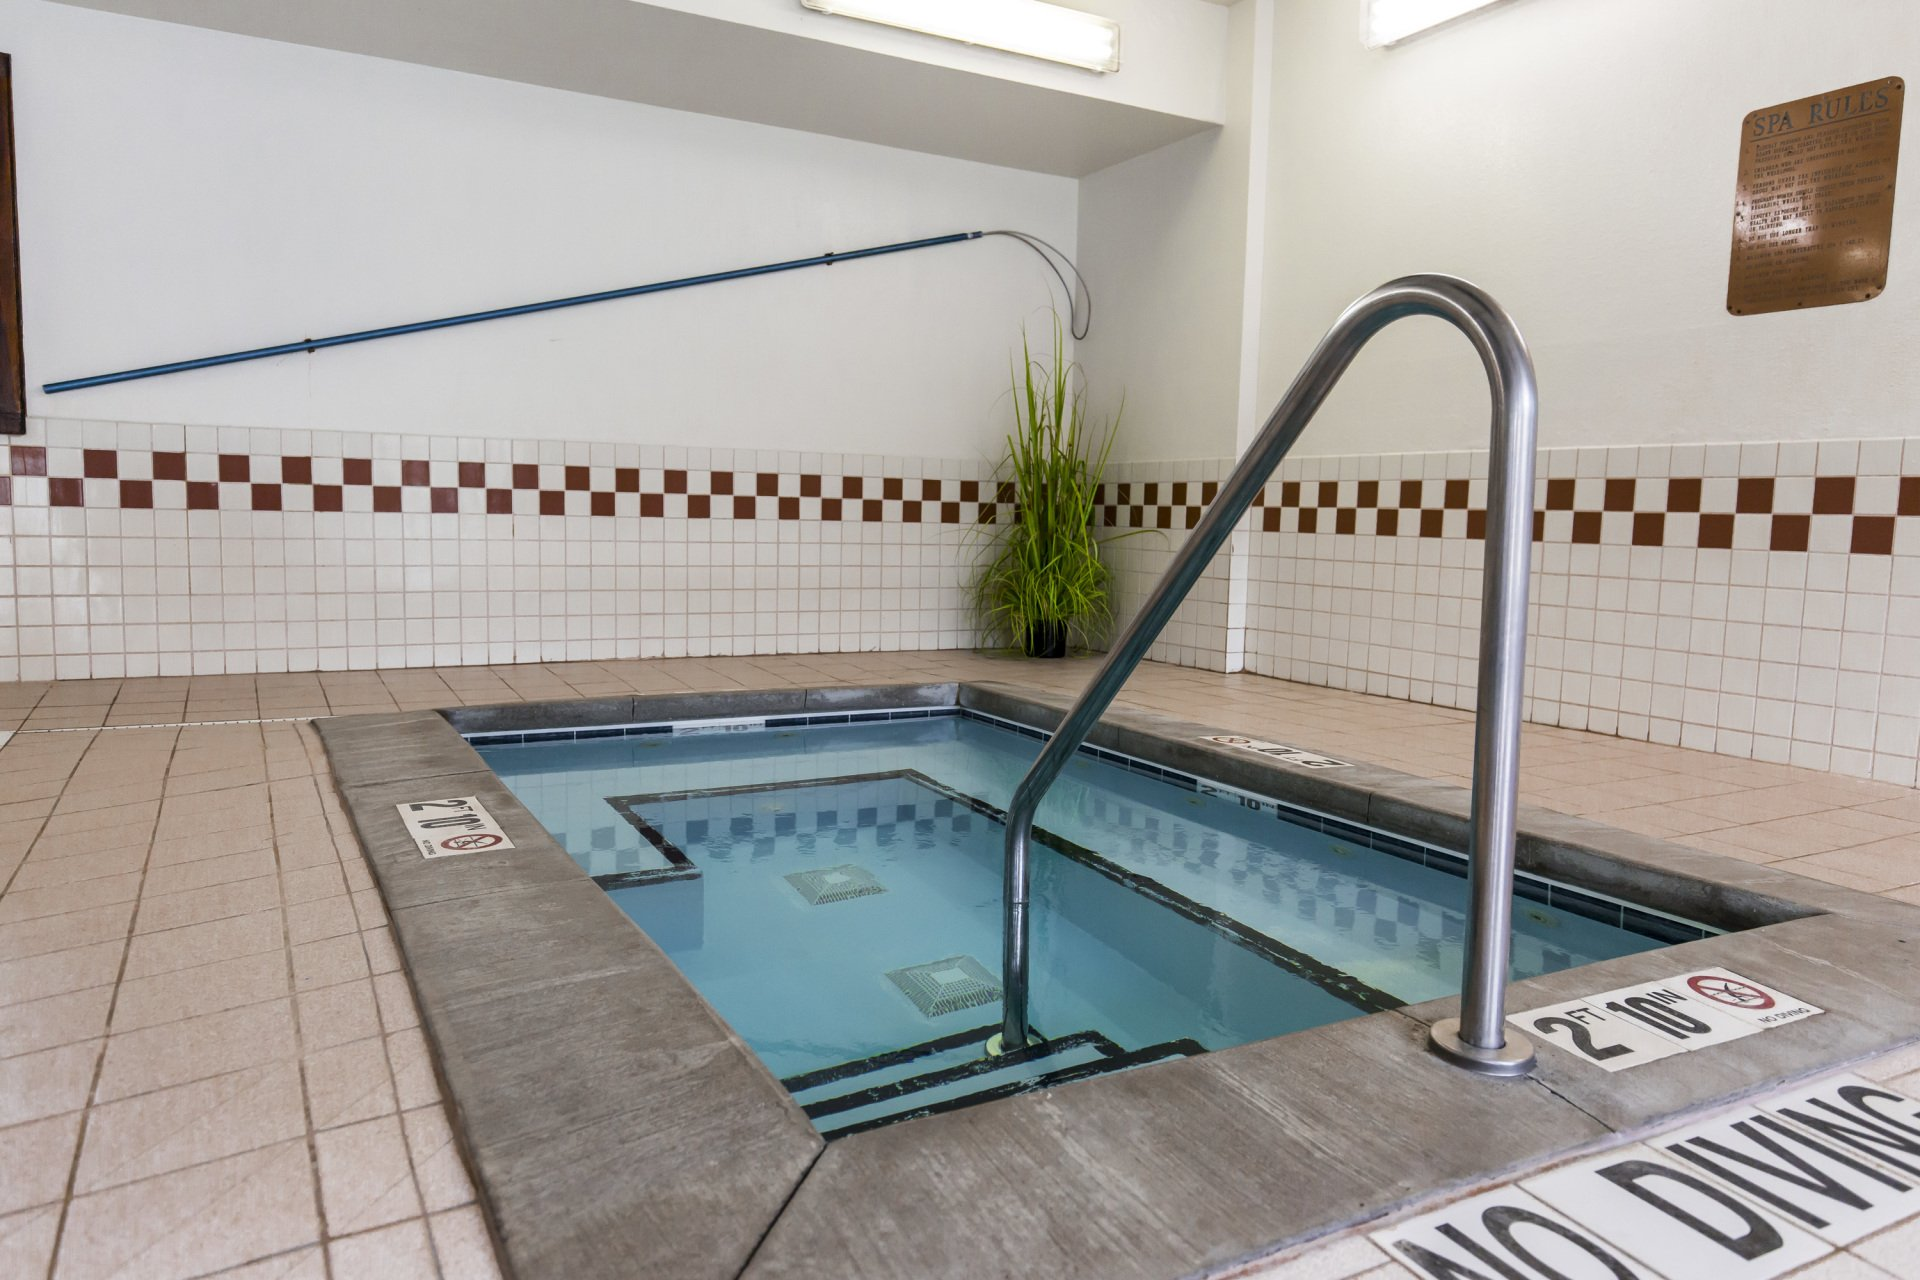 Swimming pool gym bismarck nd official site